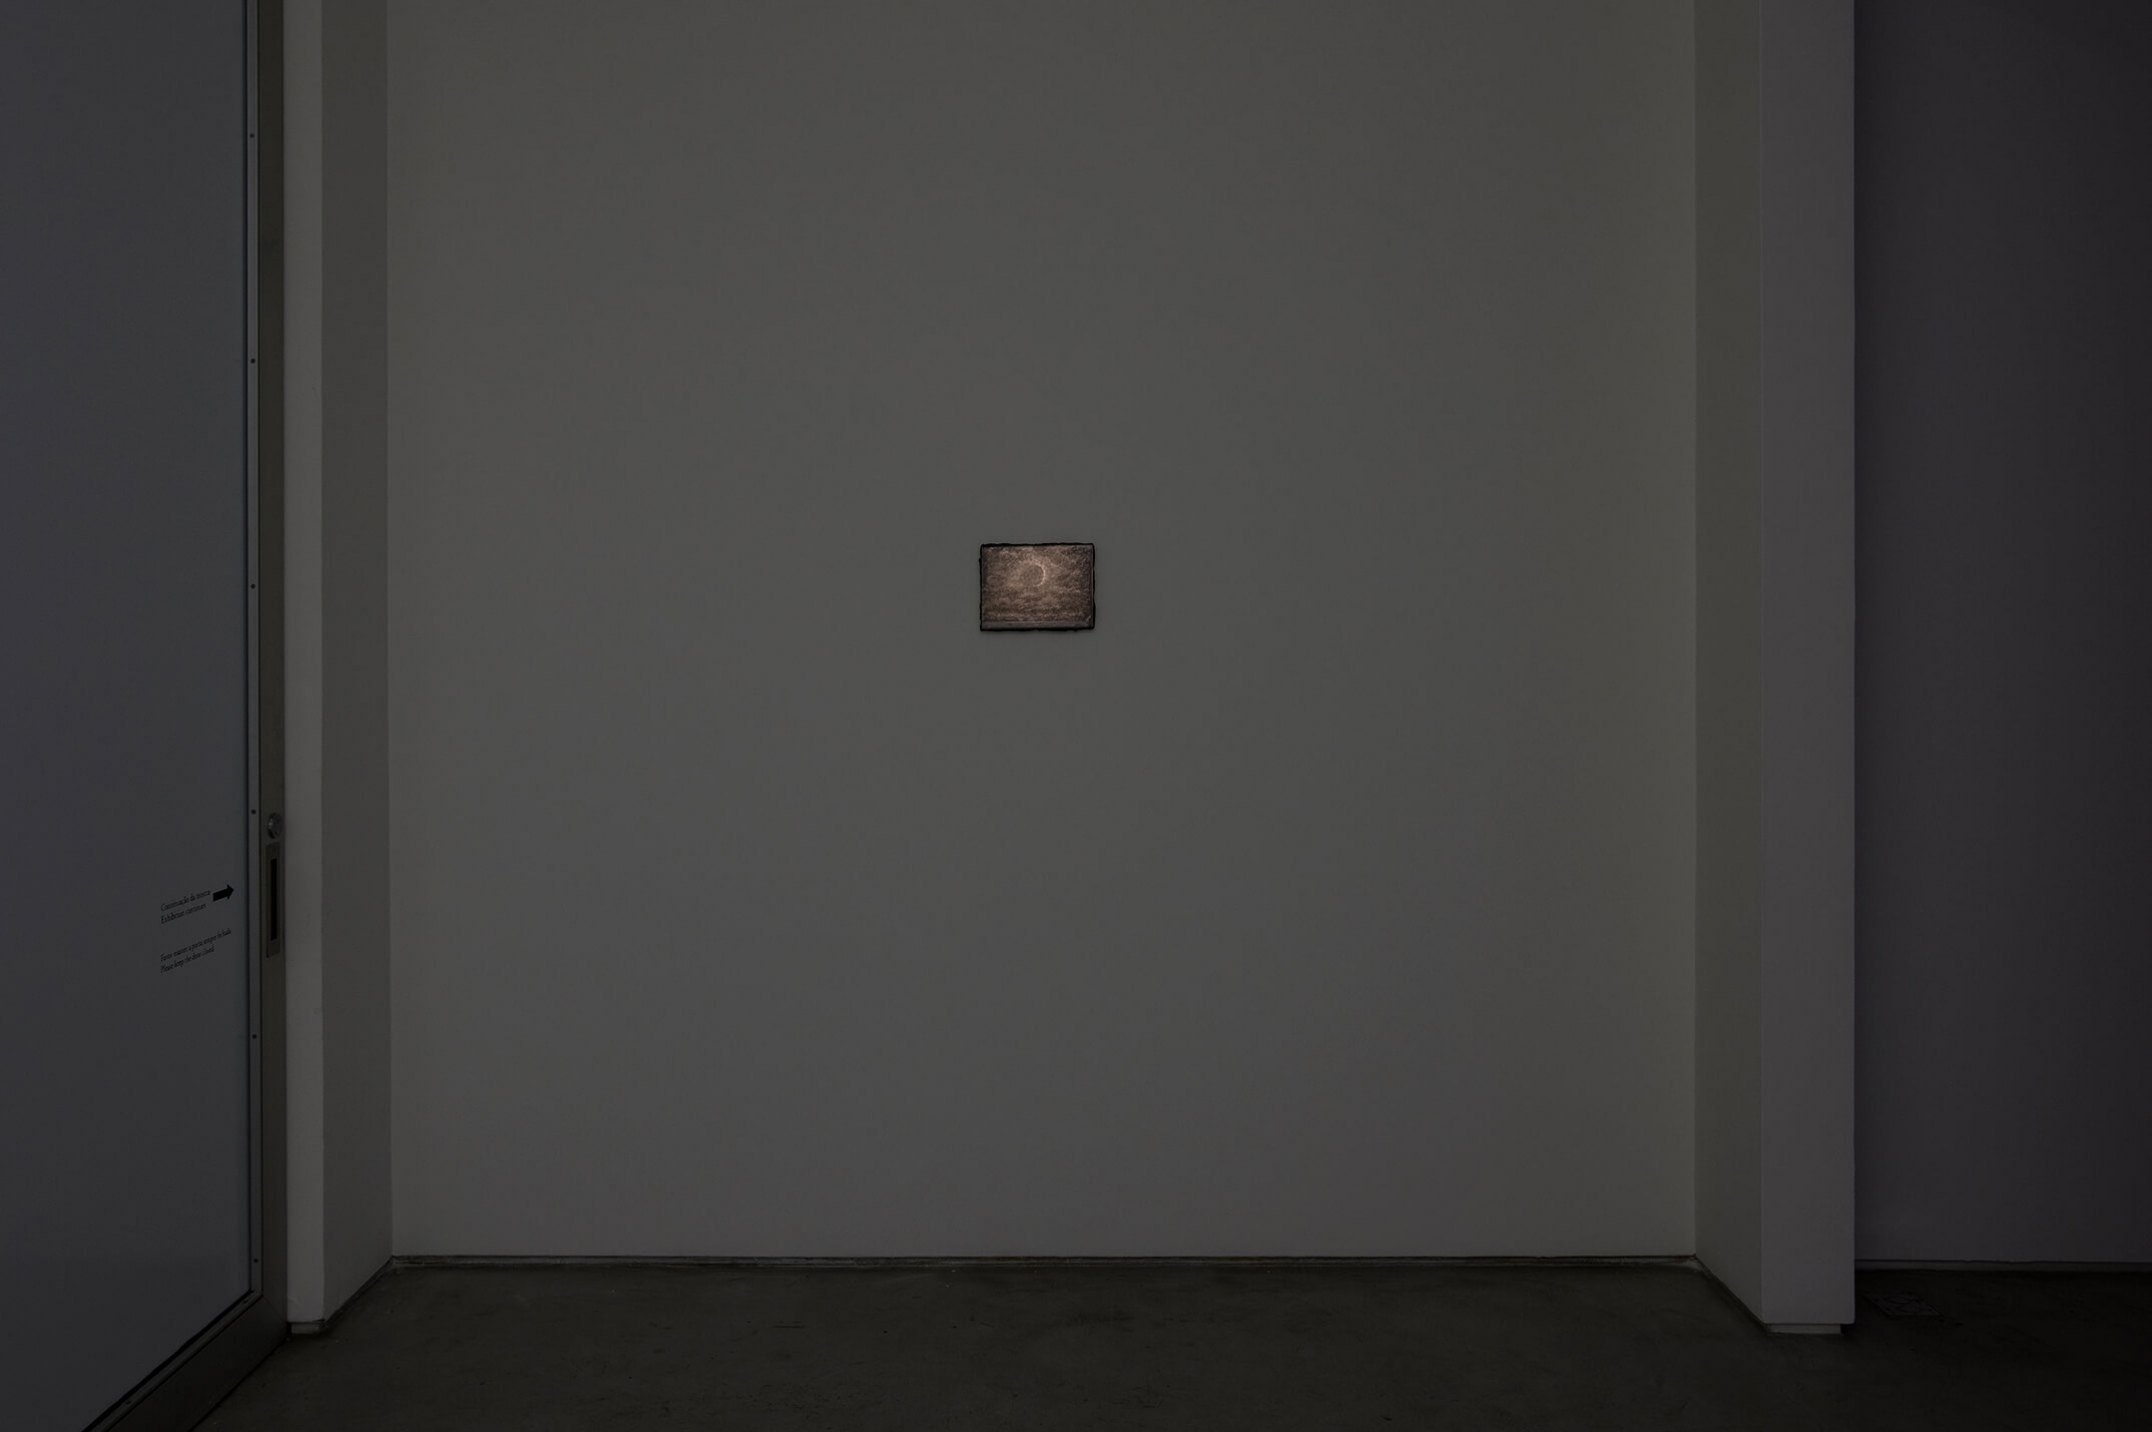 Lucas Arruda, <em>Deserto-Modelo as above so below</em>, Mendes Wood DM, São Paulo, 2016 - Mendes Wood DM